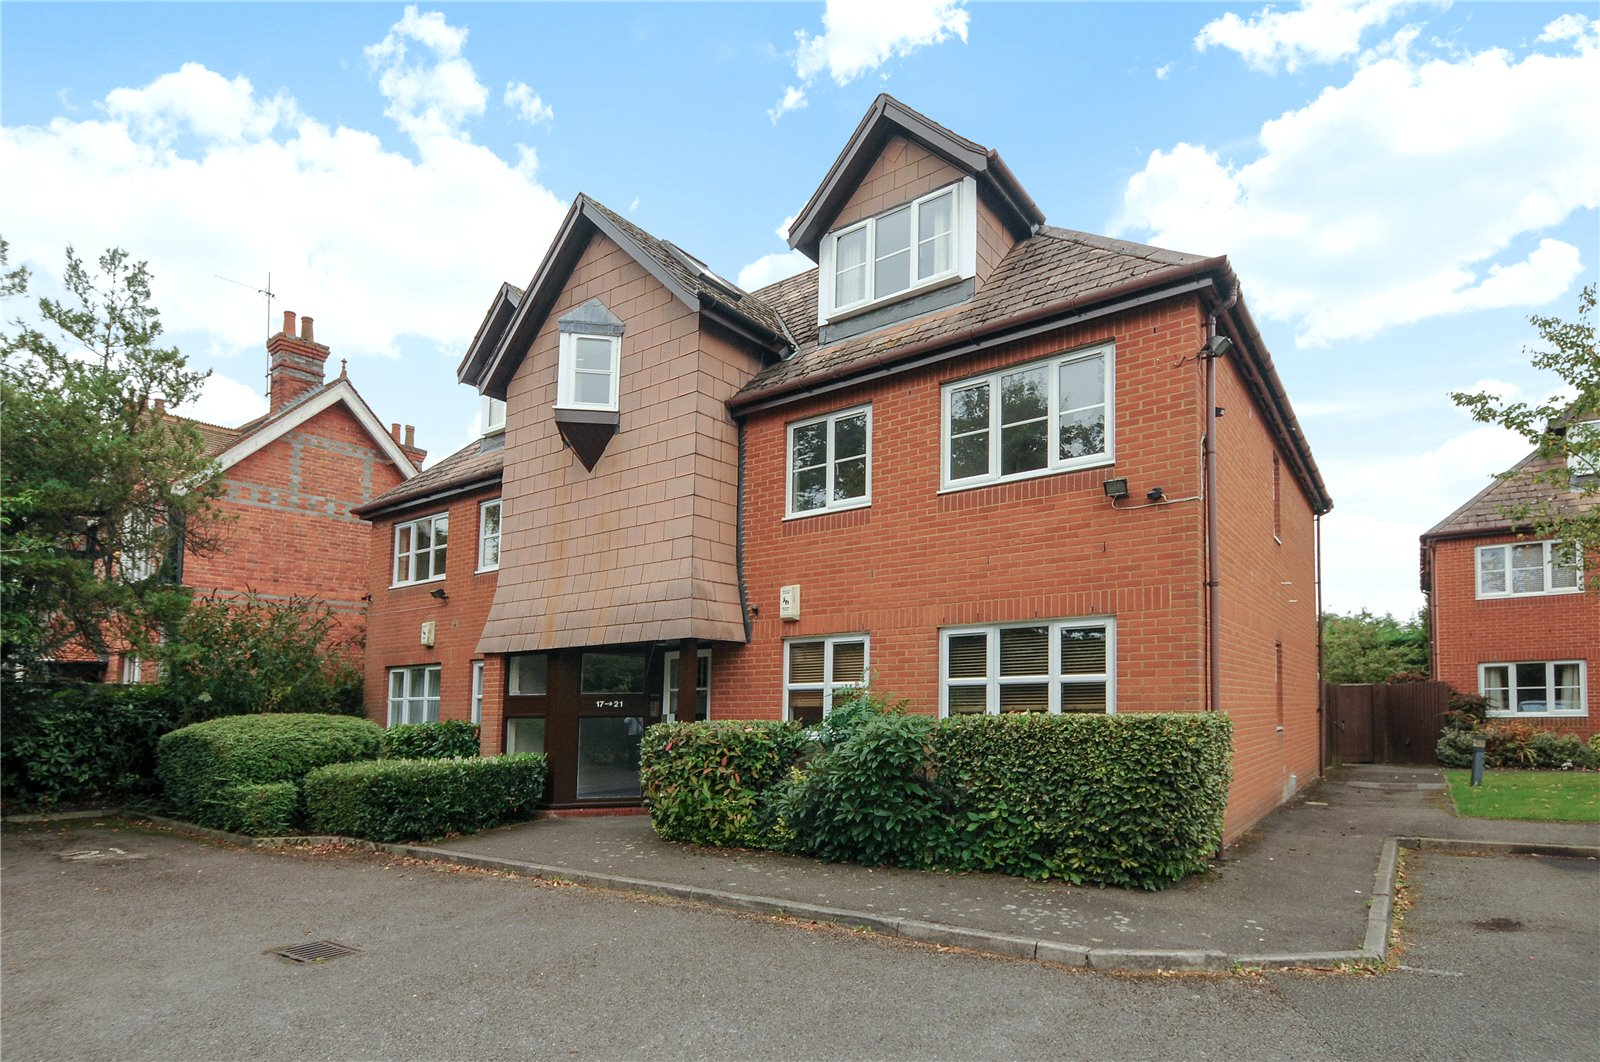 2 Bedrooms Apartment Flat for sale in Mansell Court, Shinfield Road, Reading, Berkshire, RG2